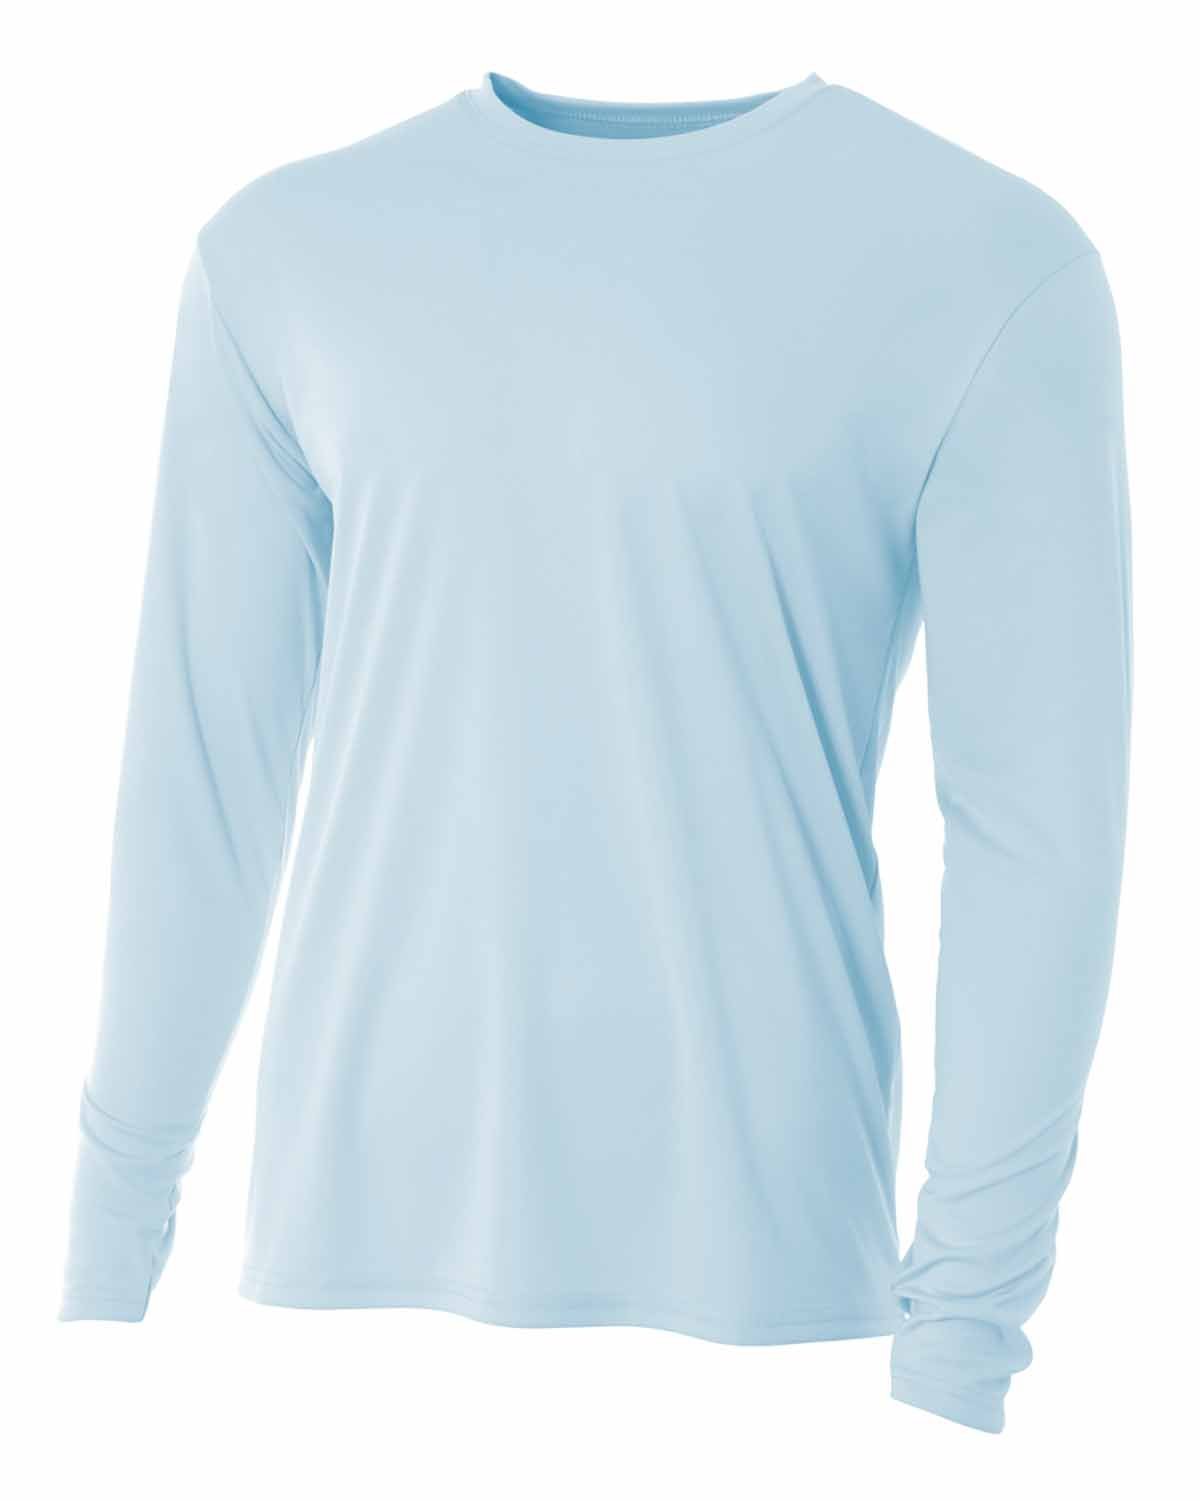 A4 Youth Long Sleeve Cooling Performance Crew Shirt PASTEL BLUE